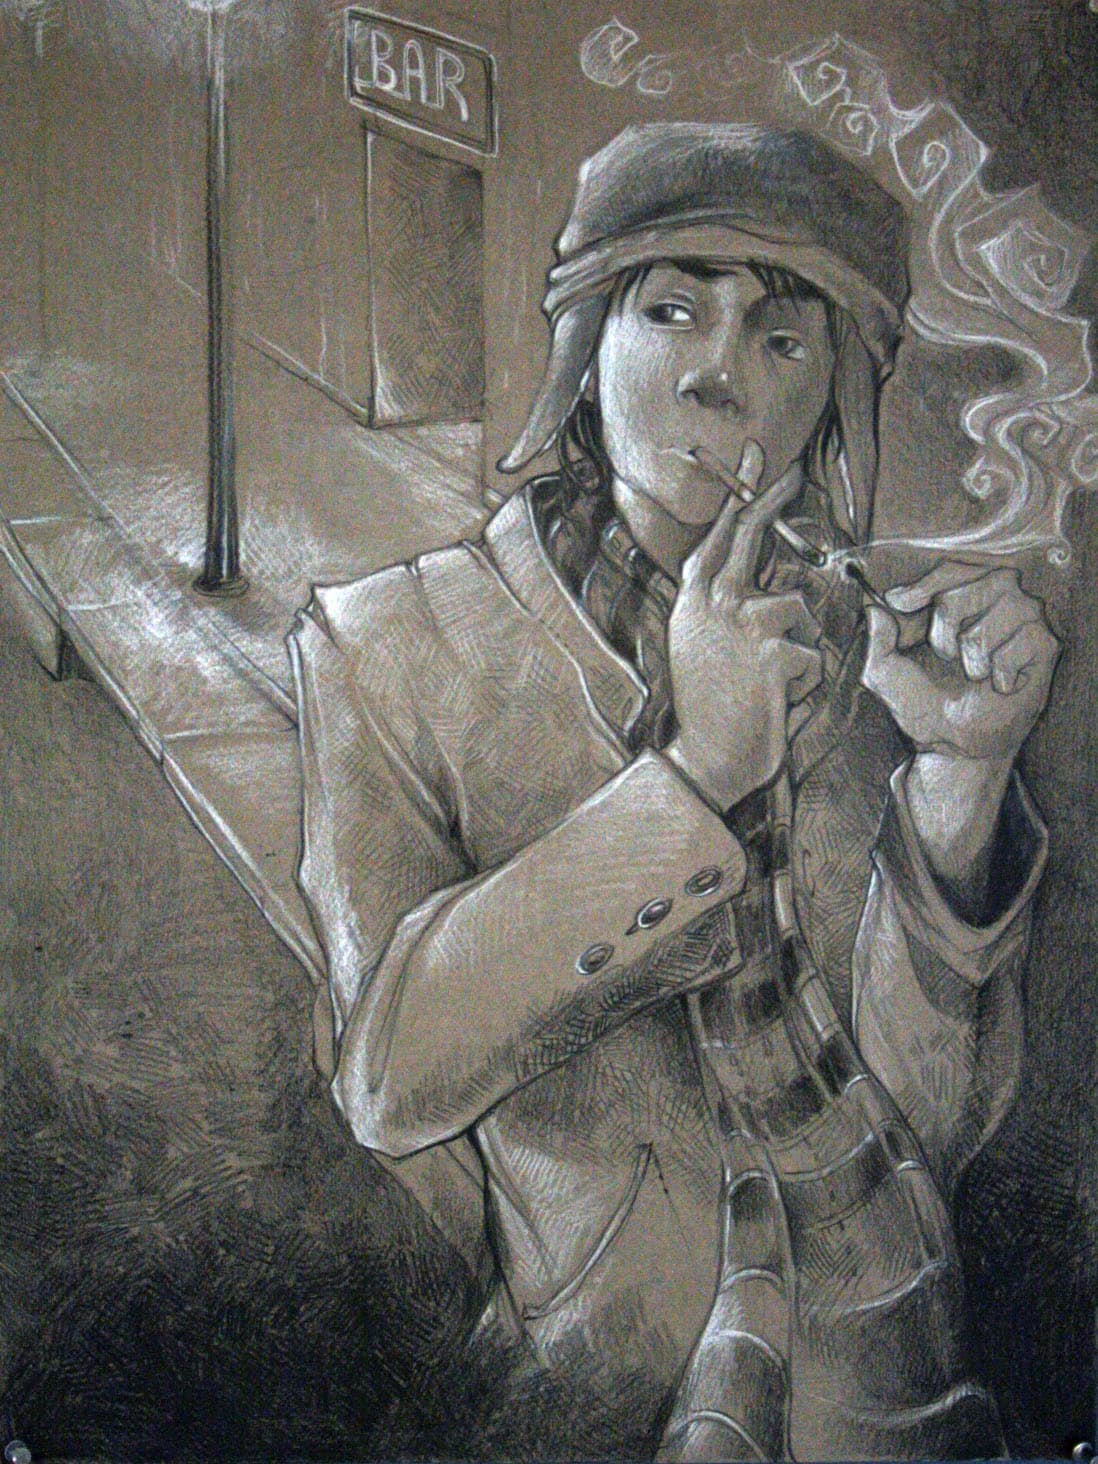 an analysis of holden caulfield Holden caulfield is a fictional character in author j d salinger's 1951 novel the catcher in the ryesince the book's publication, holden has become an icon for teenage rebellion and.